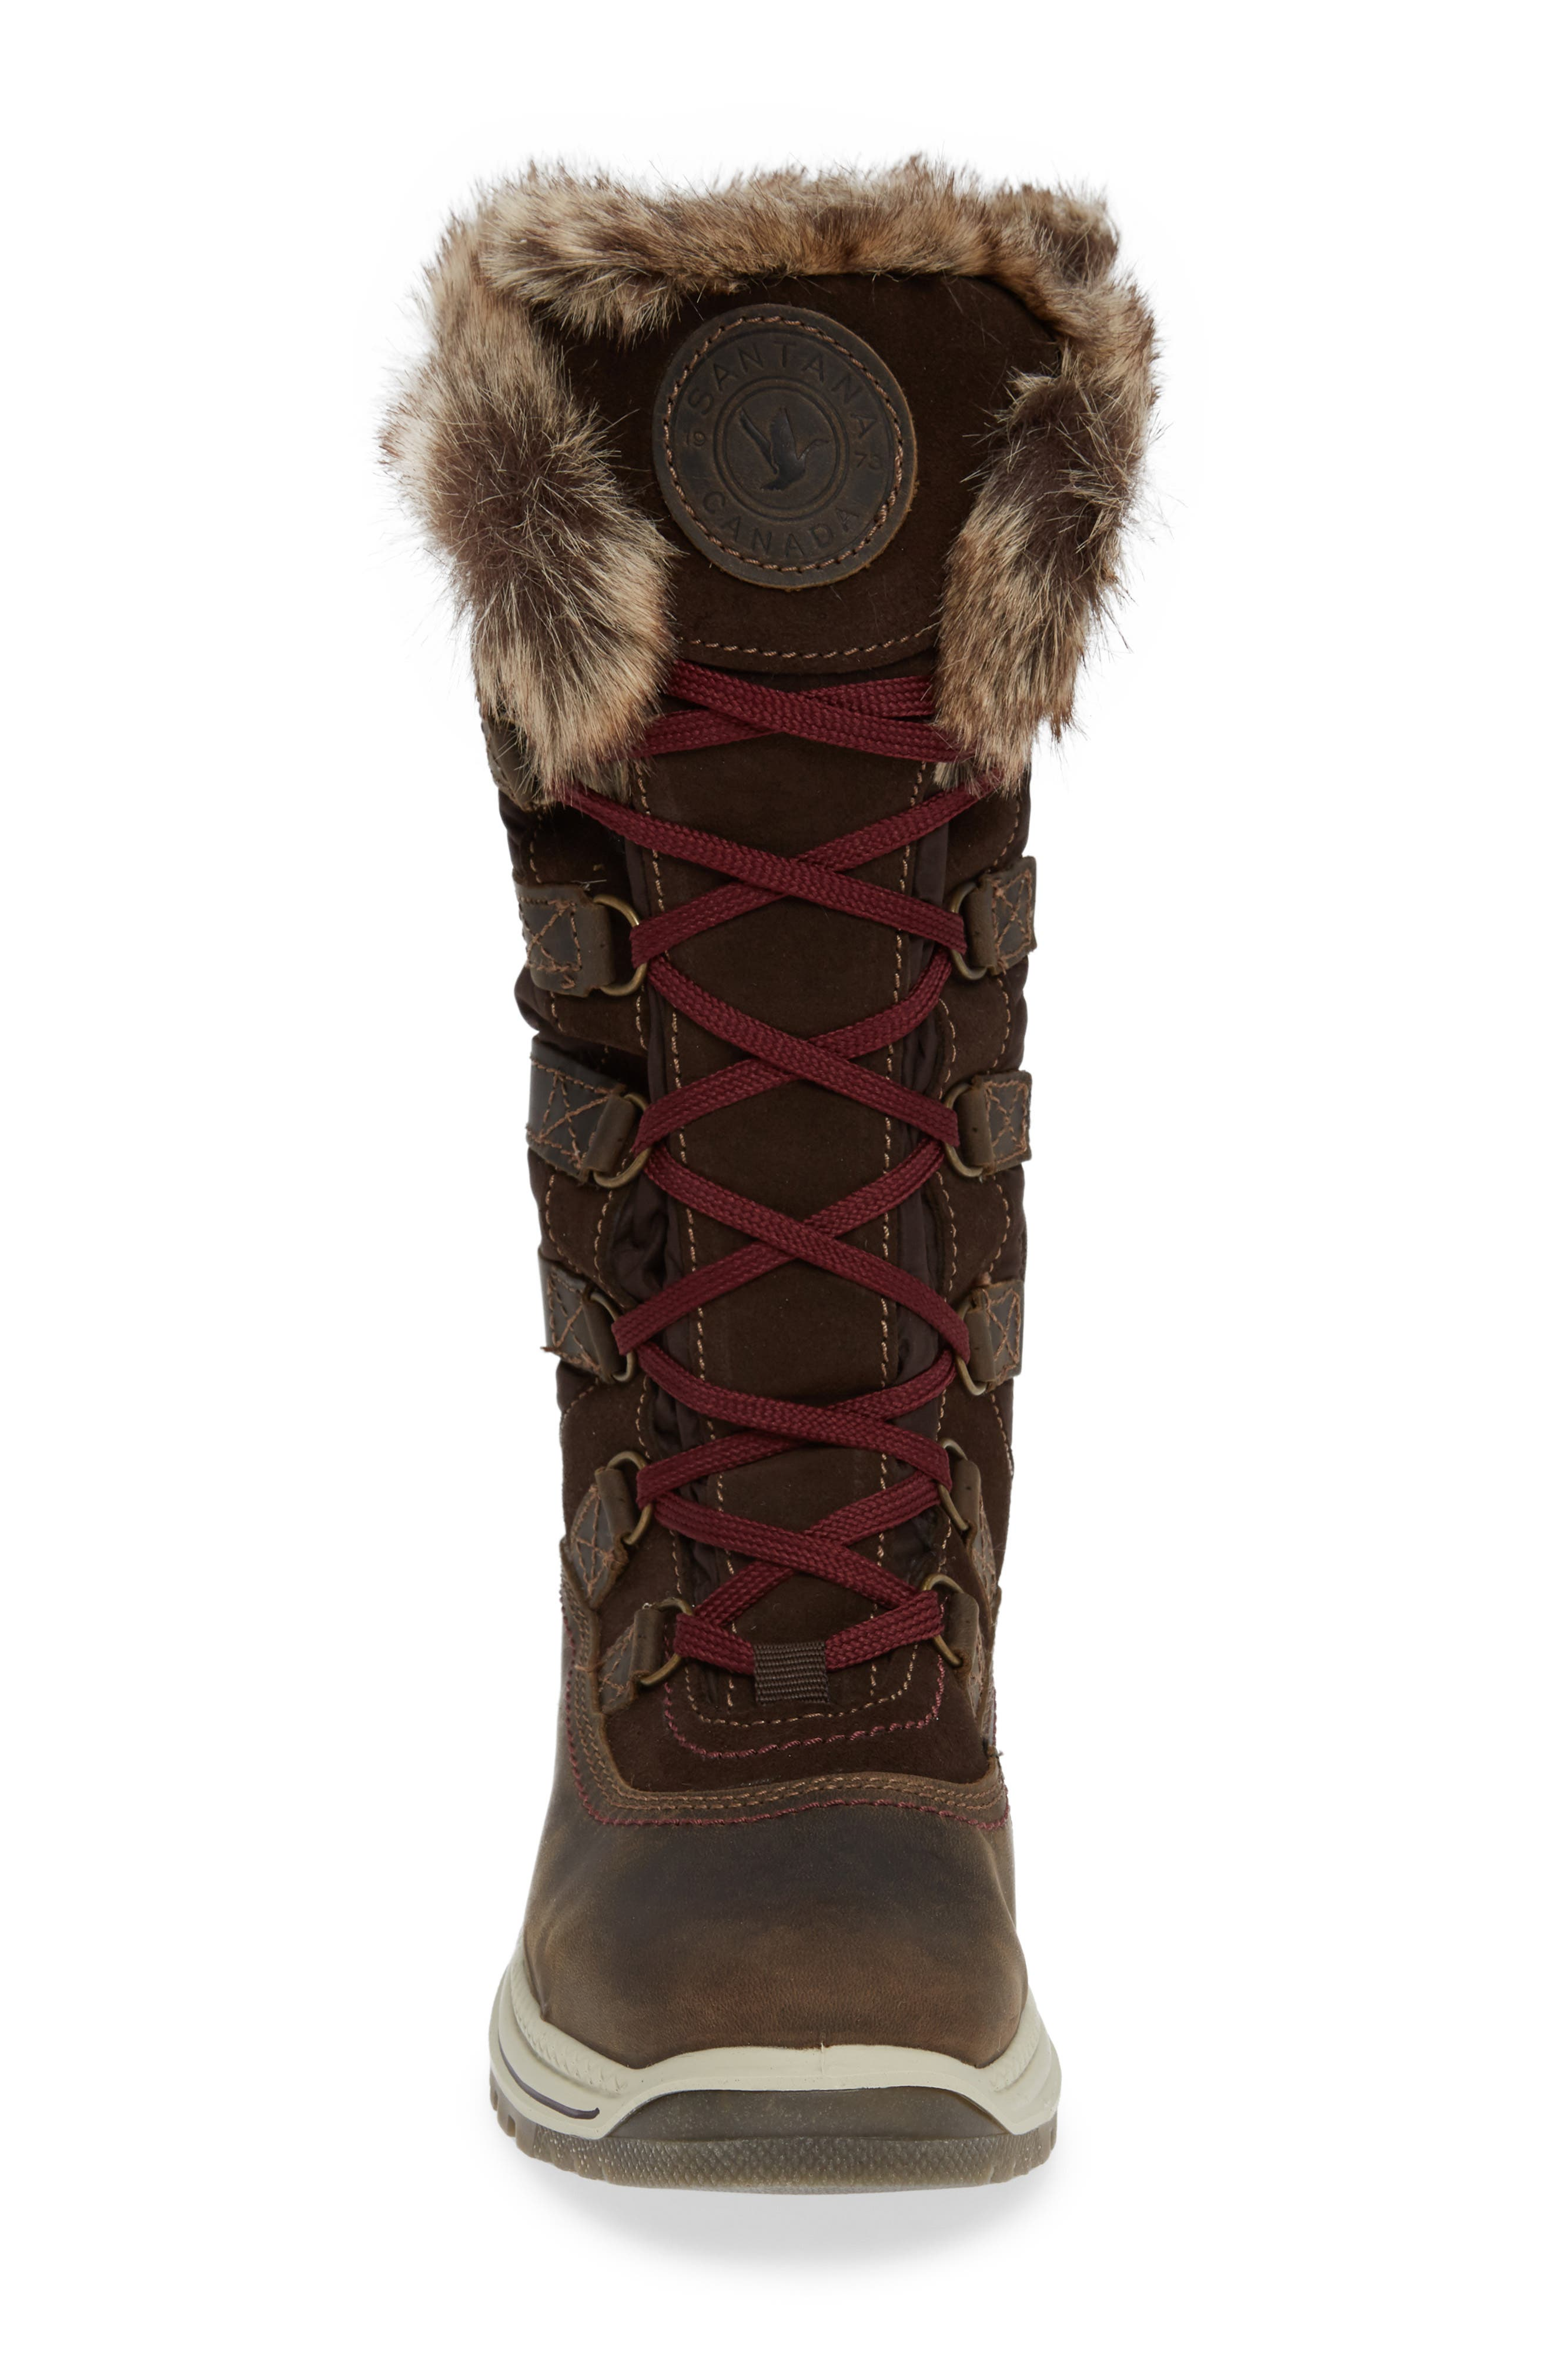 Milani Waterproof Faux Fur Boot,                             Alternate thumbnail 4, color,                             BROWN / BROWN LEATHER